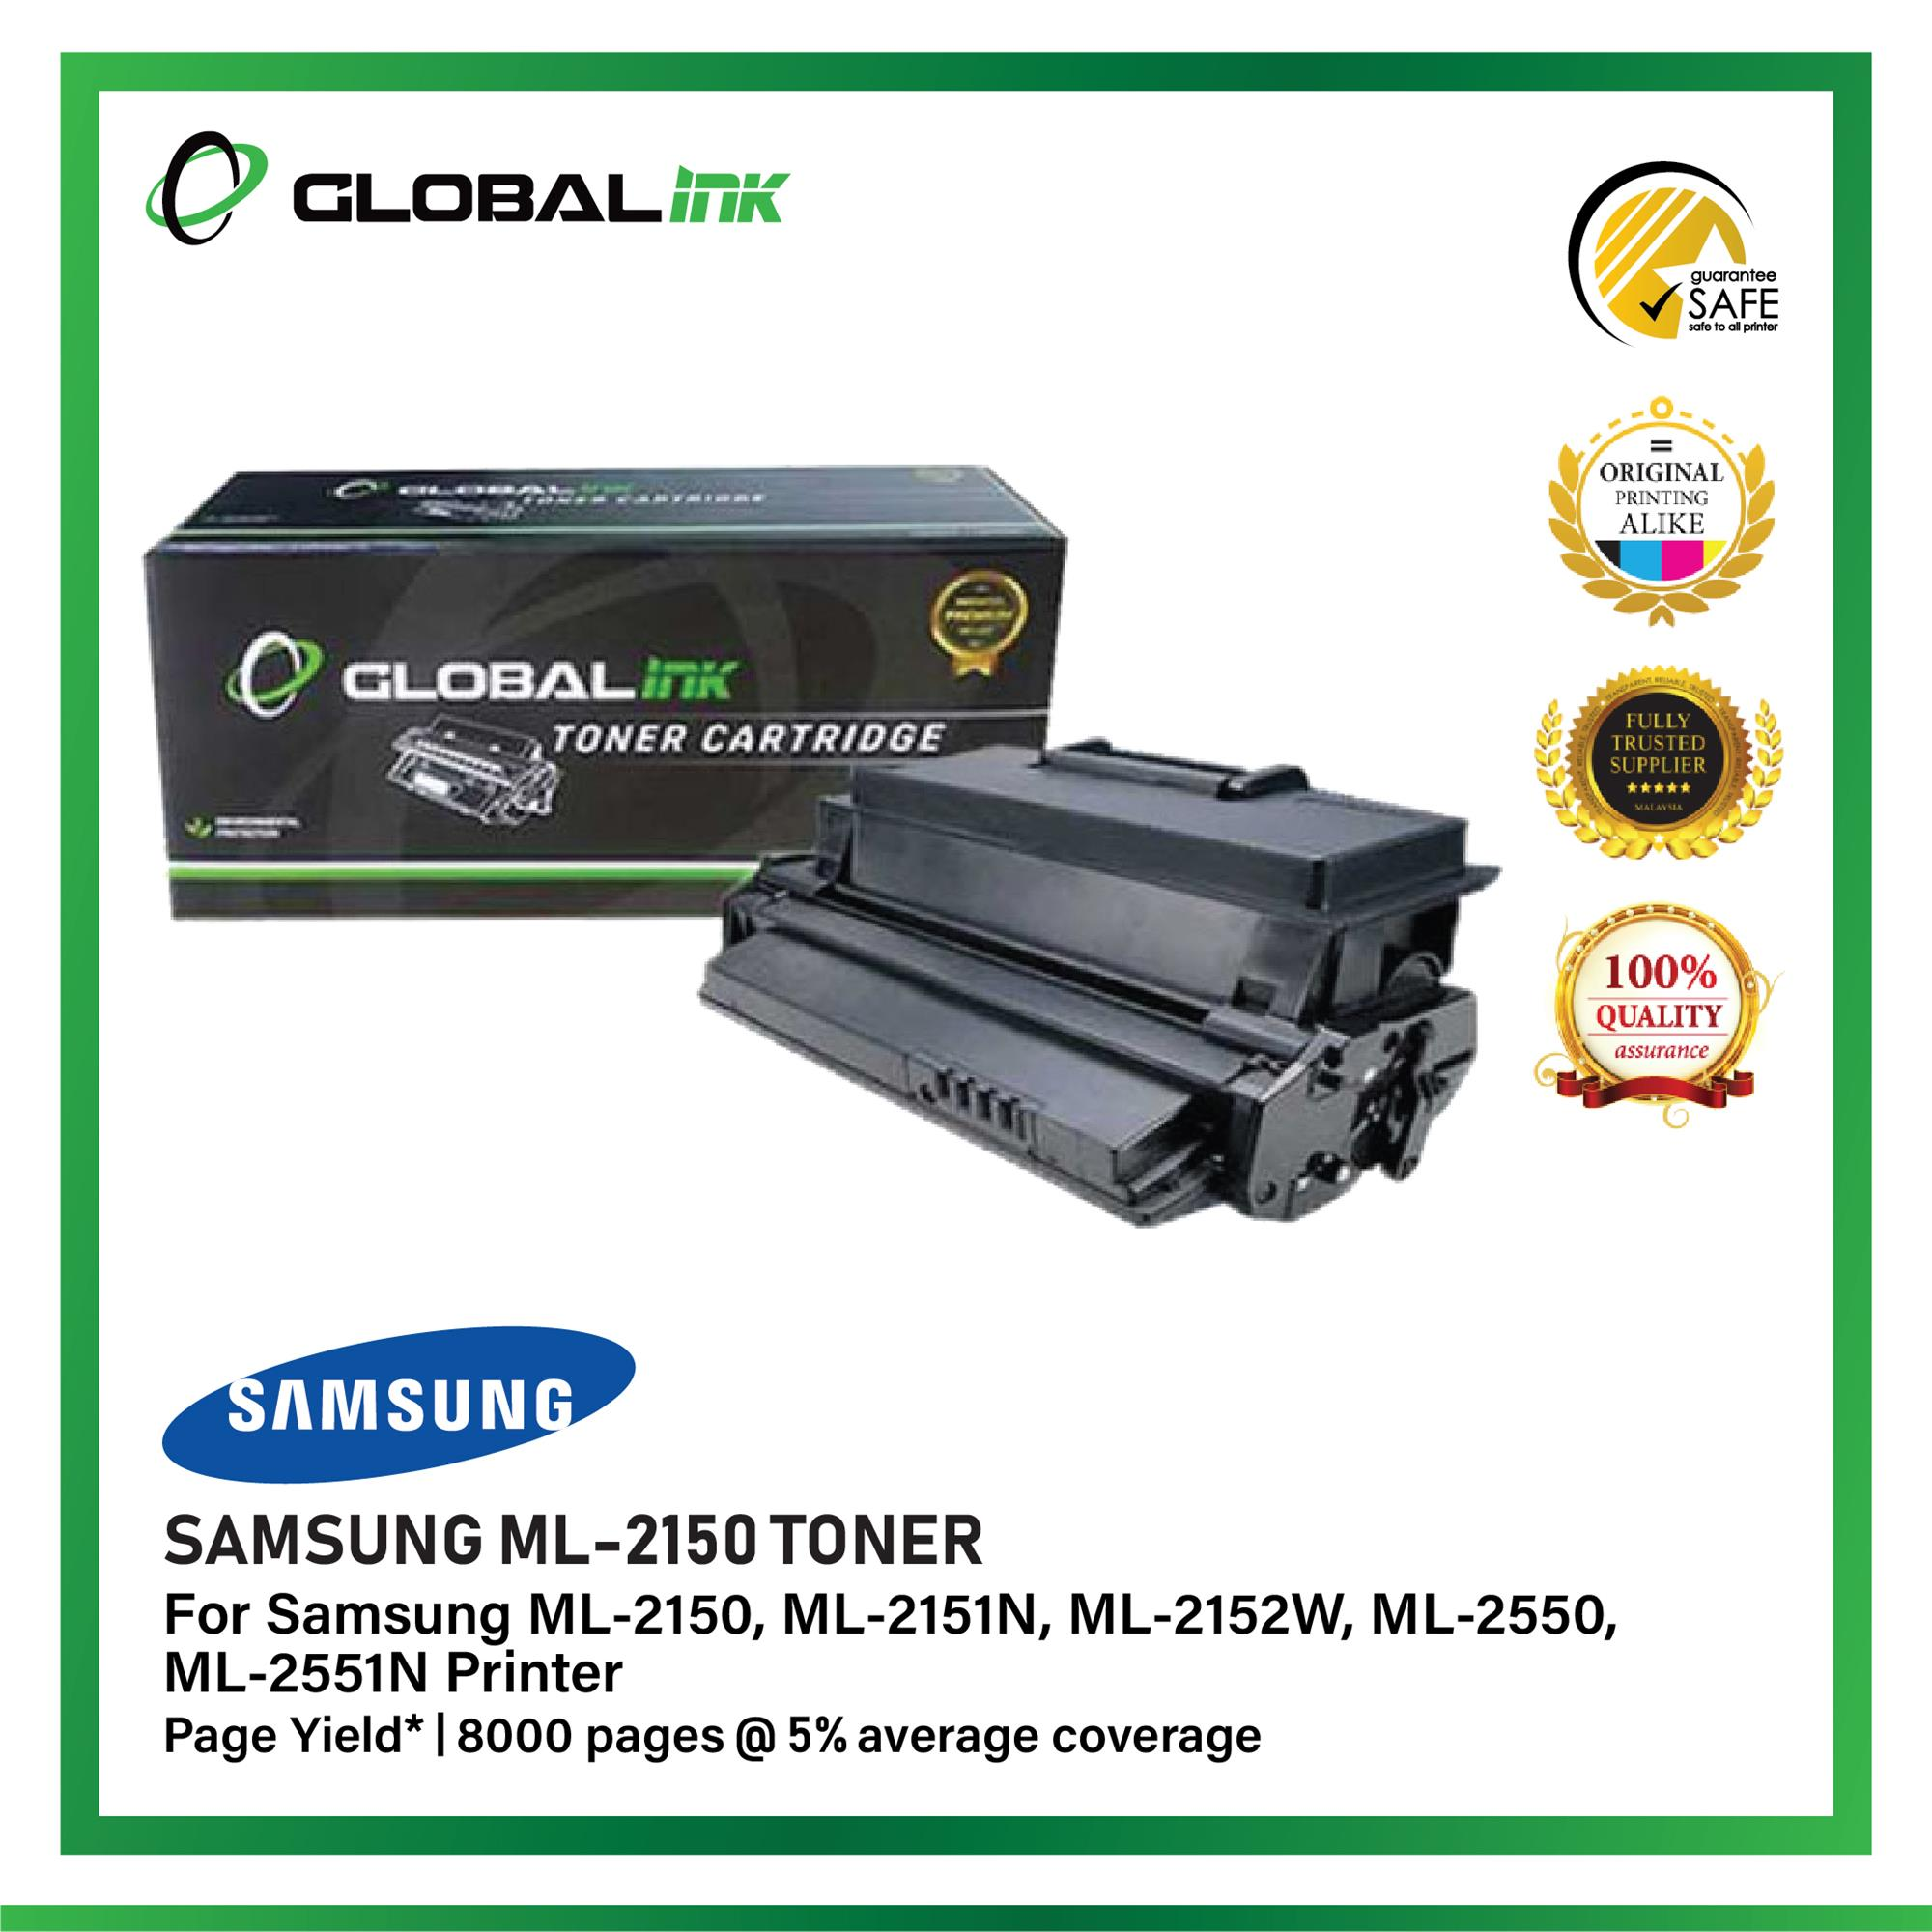 SAMSUNG LASER PRINTER ML-2150 DOWNLOAD DRIVER